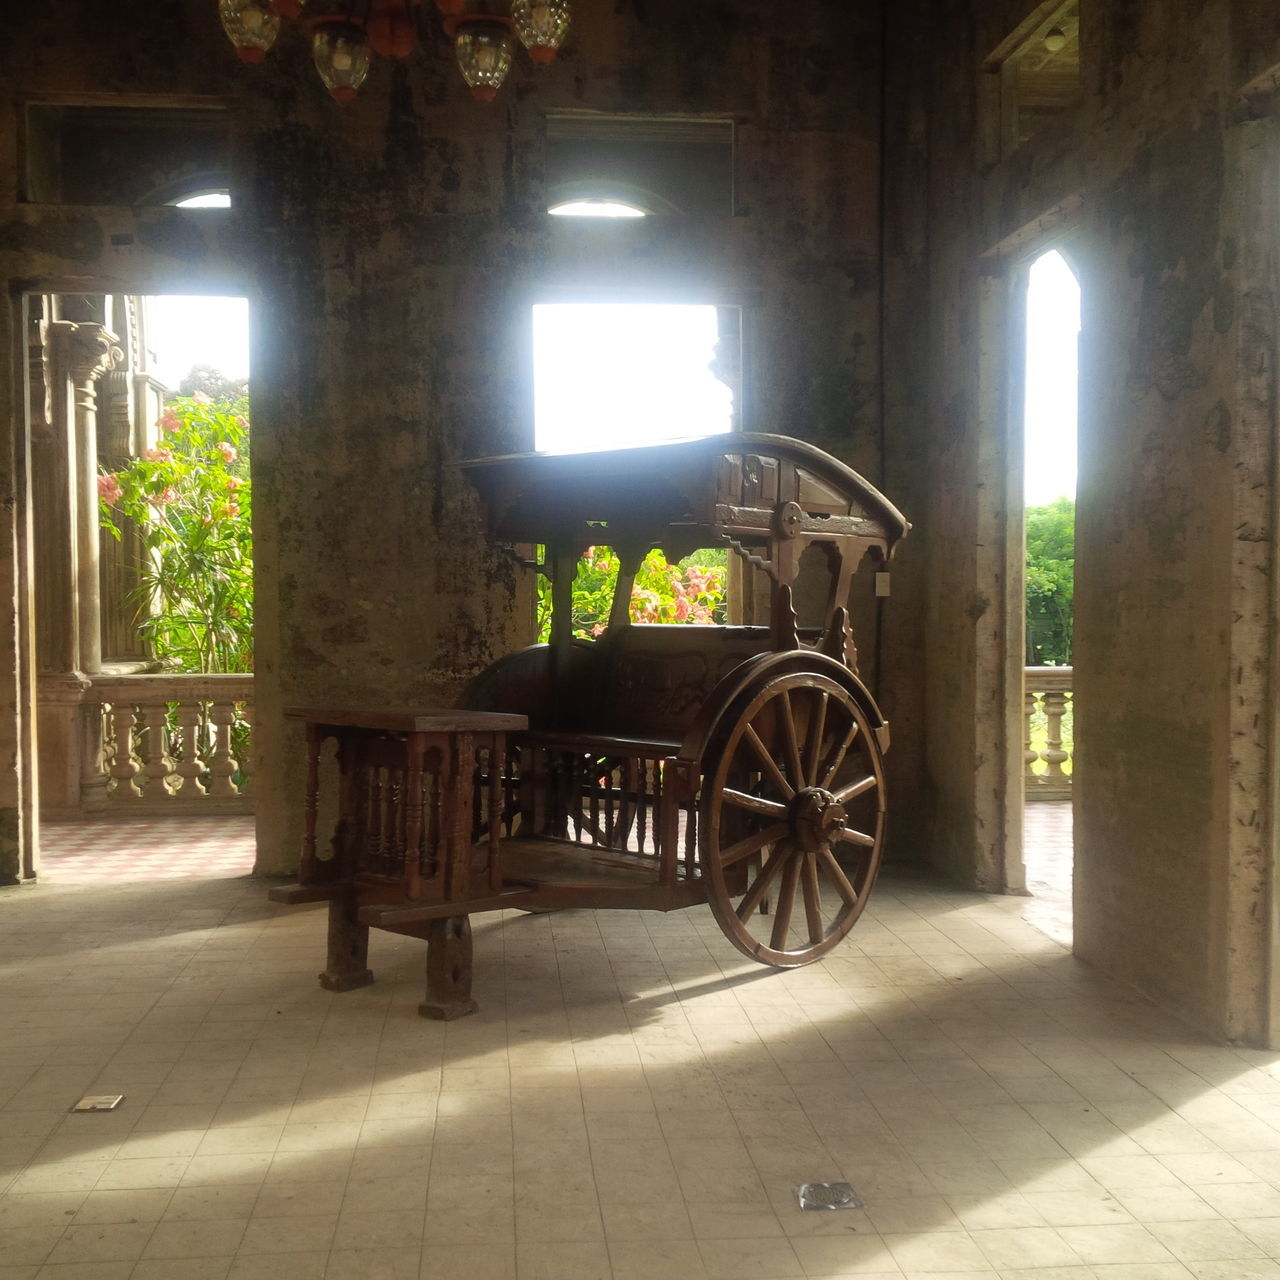 transportation, history, indoors, mode of transport, architectural column, horse cart, ancient, no people, tree, day, illuminated, architecture, mammal